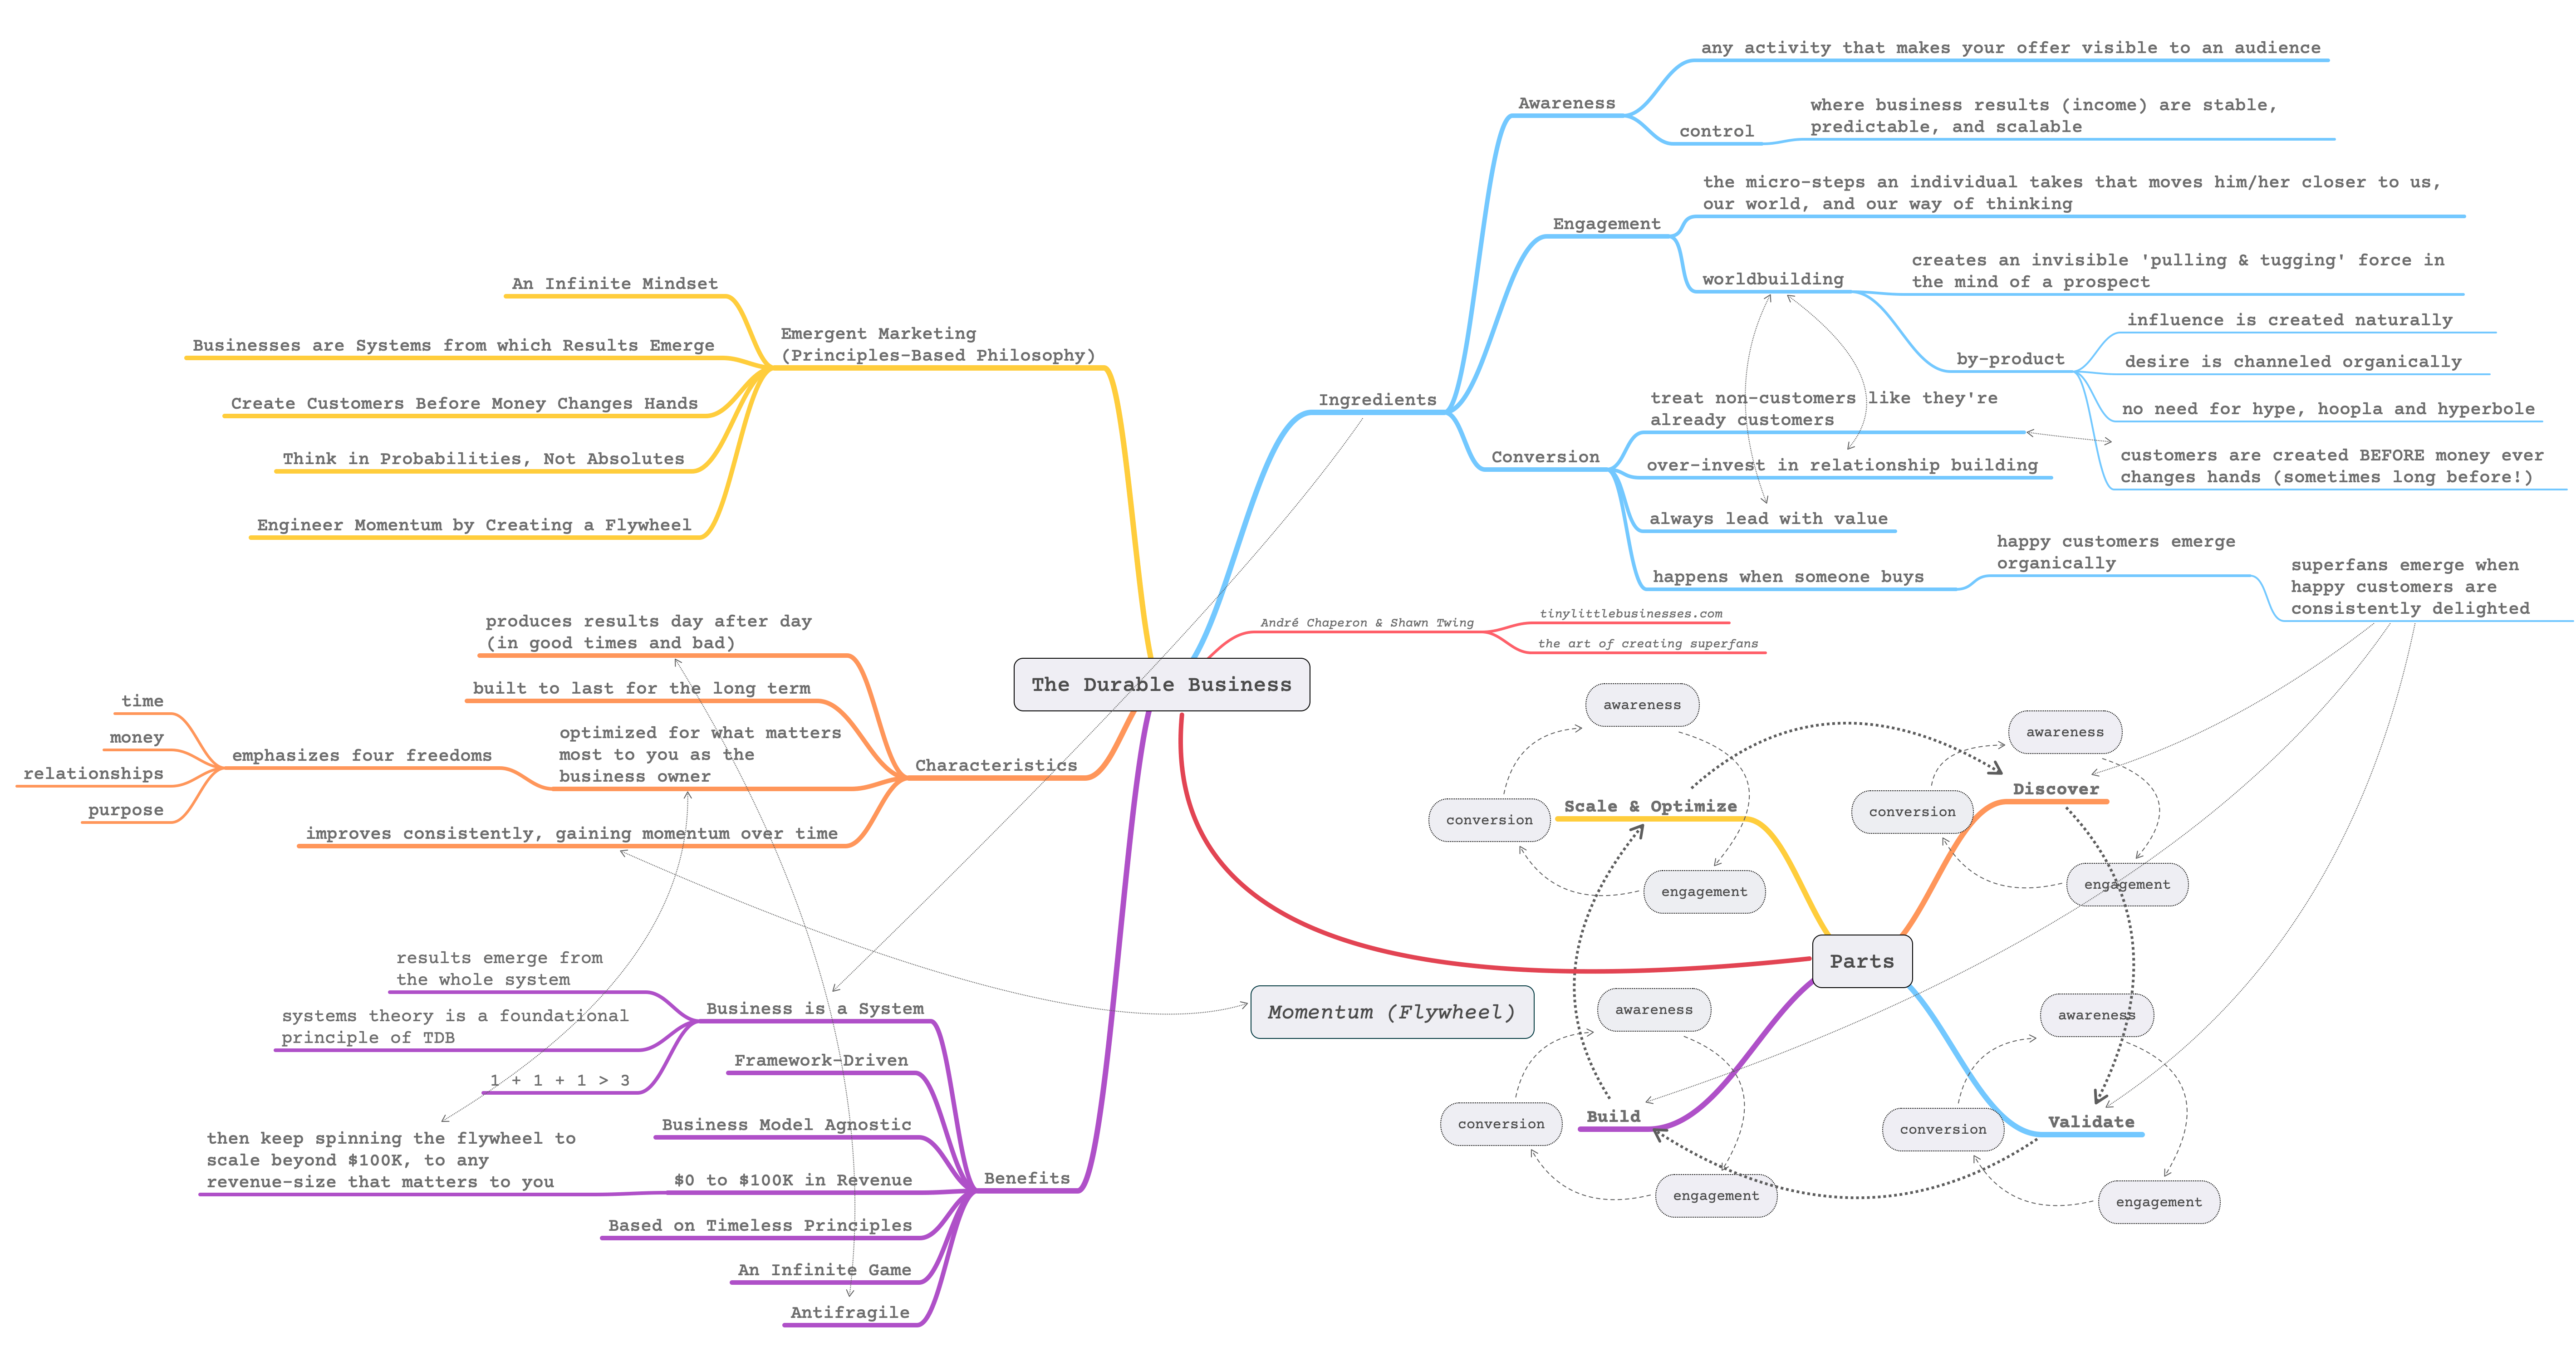 Mind Map of The Durable Business